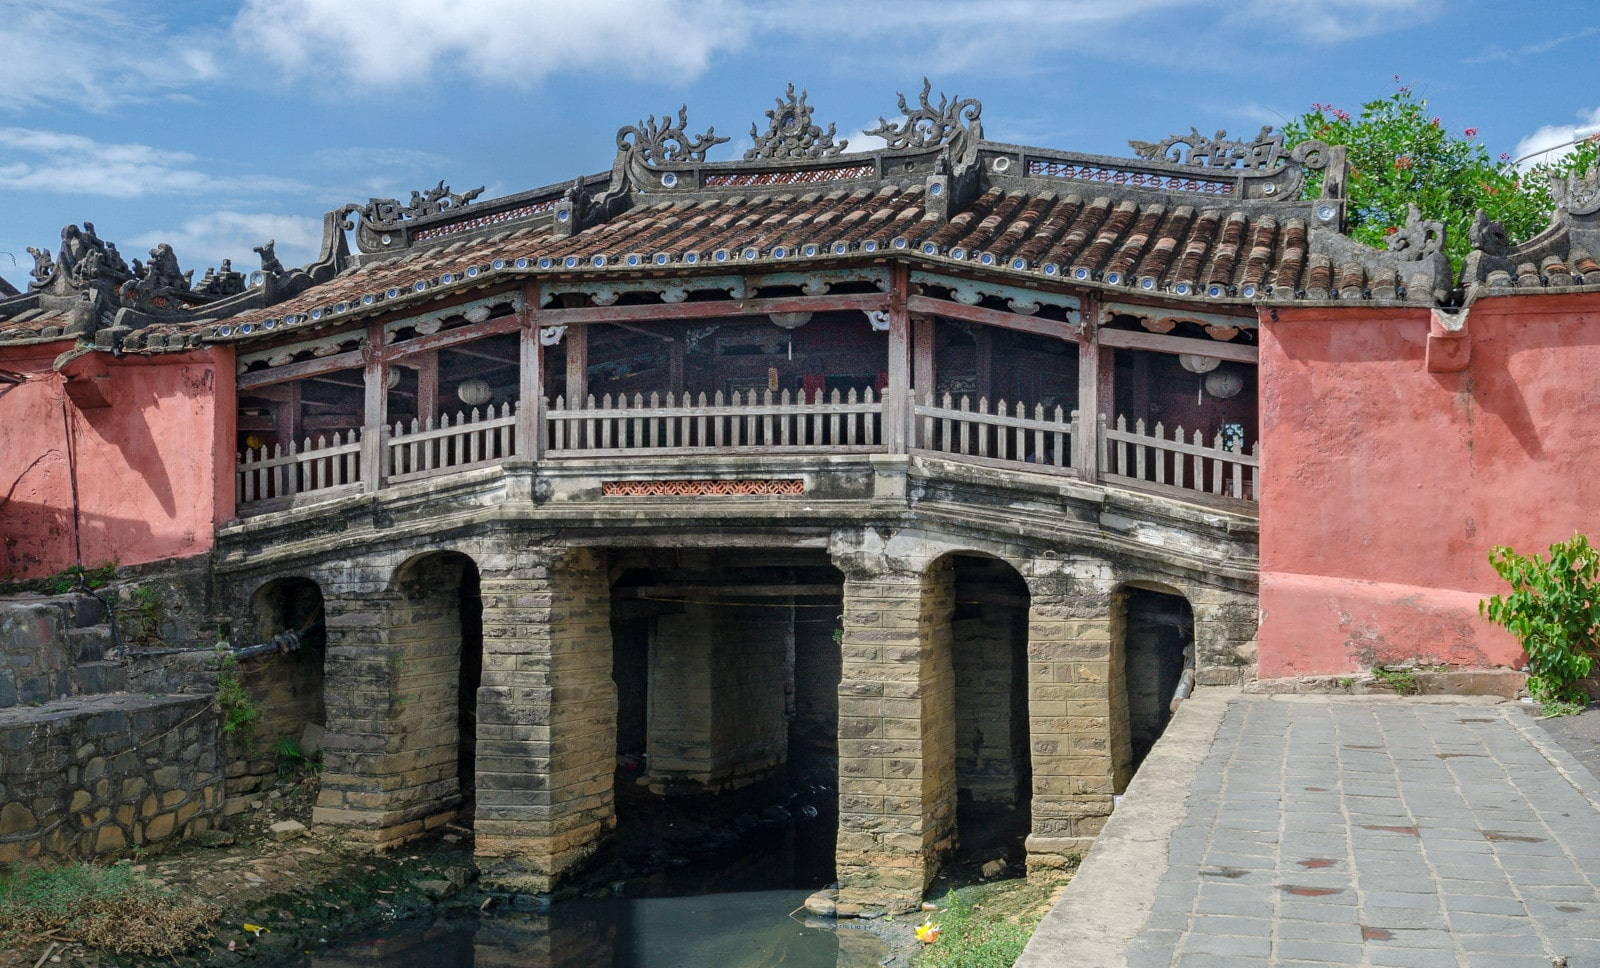 Image of the Japanese Covered Bridge in Hoi An, Vietnam